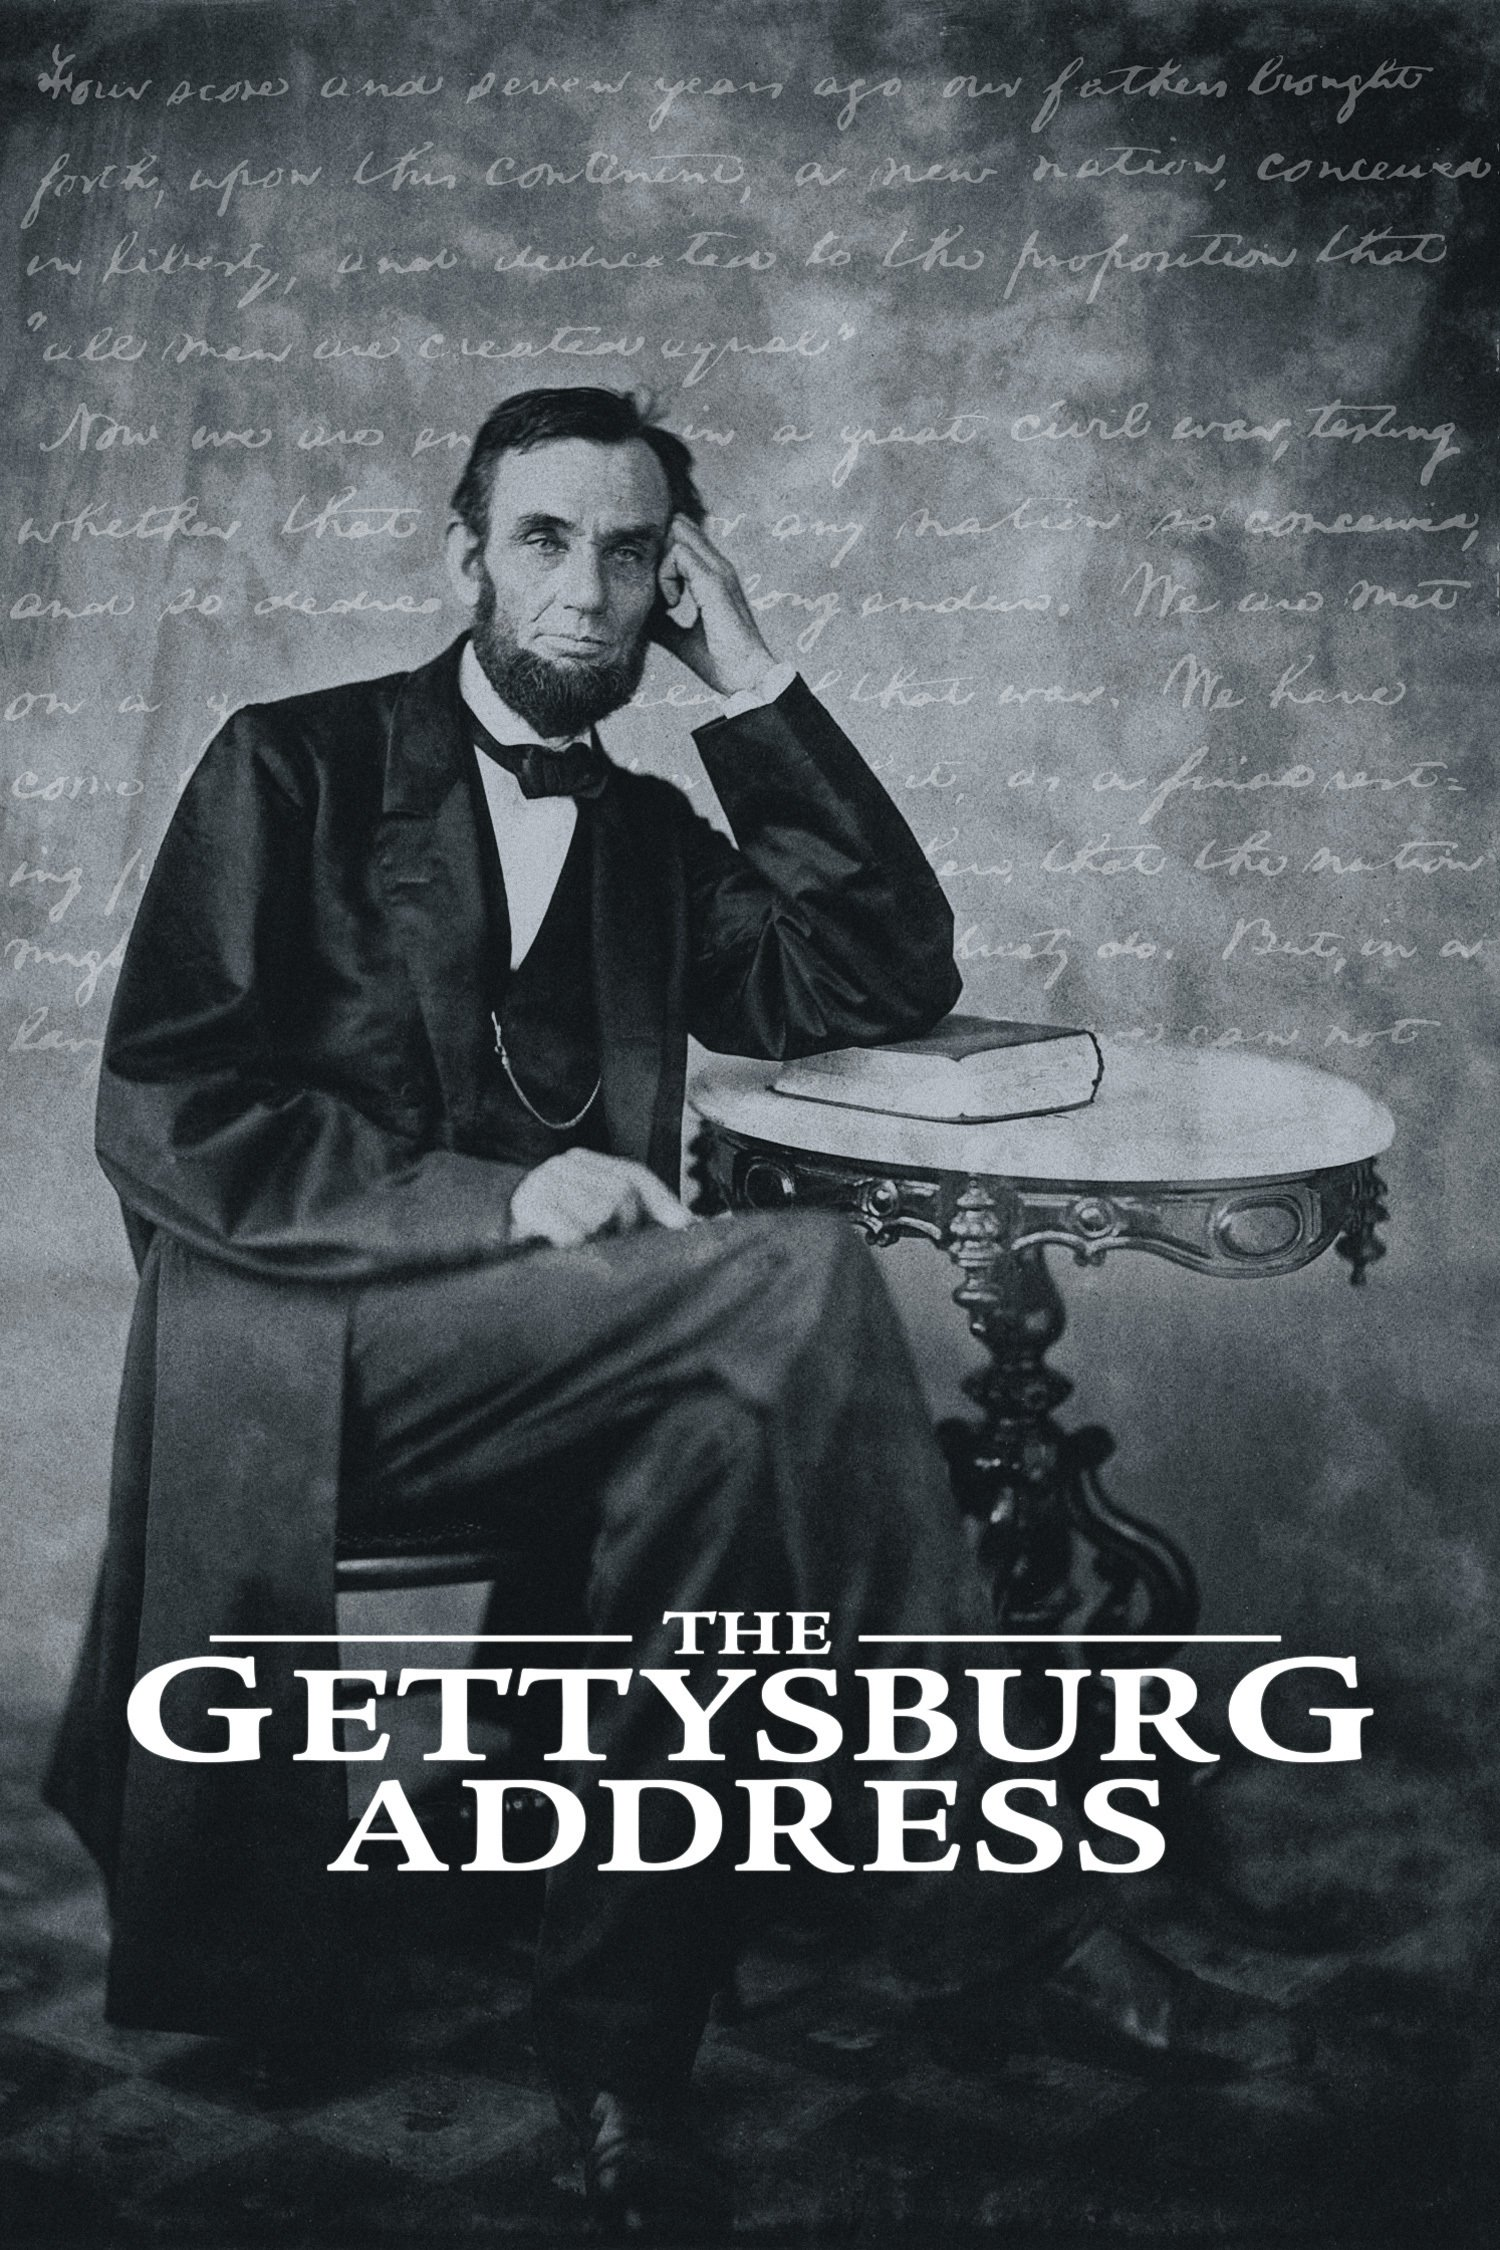 the gettysburg address Gettysburg address mr wills, author of lincoln at gettysburg: the words that remade america, talked about the the gettysburg address, which president lincoln delivered on november 19, 1863.